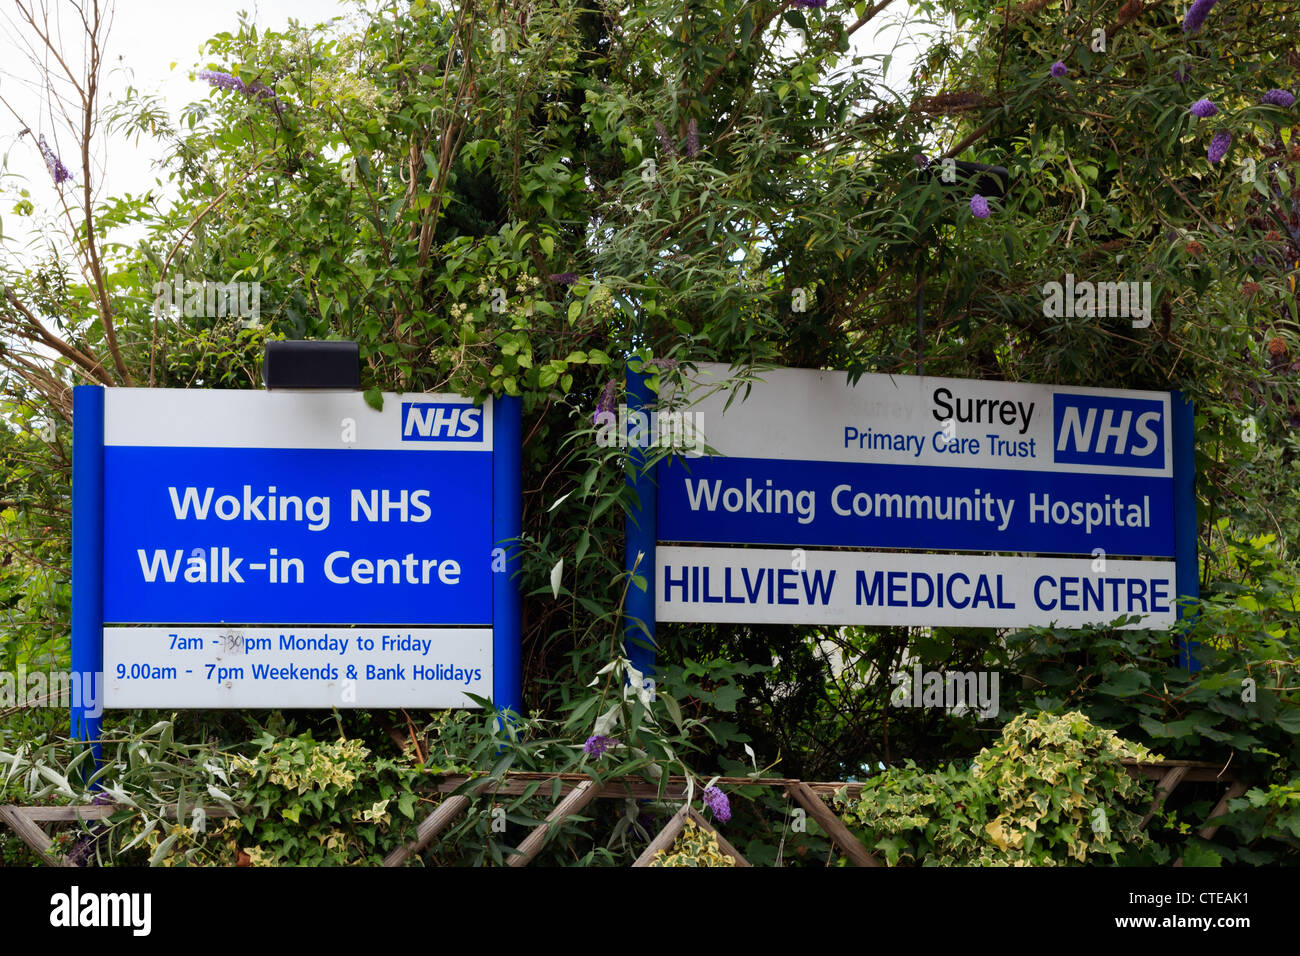 Woking Community Hospital and Woking NHS Walk-in Cenre signs - Stock Image